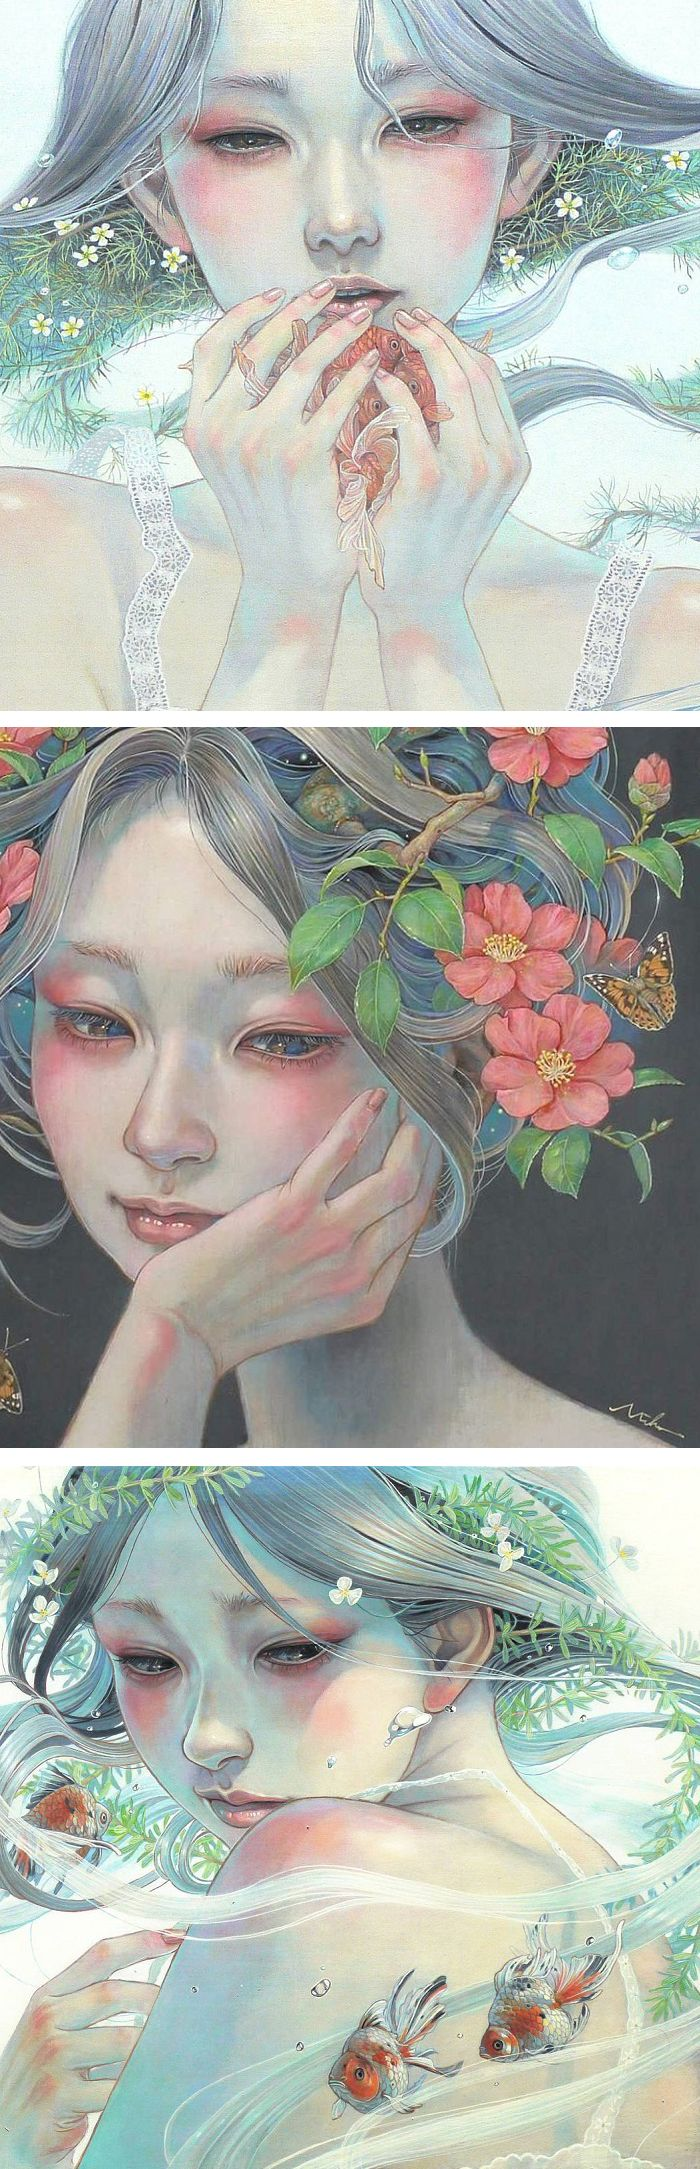 Photo of Delicate Japanese Oil Paintings of Ethereal Woman Submerged with Nature